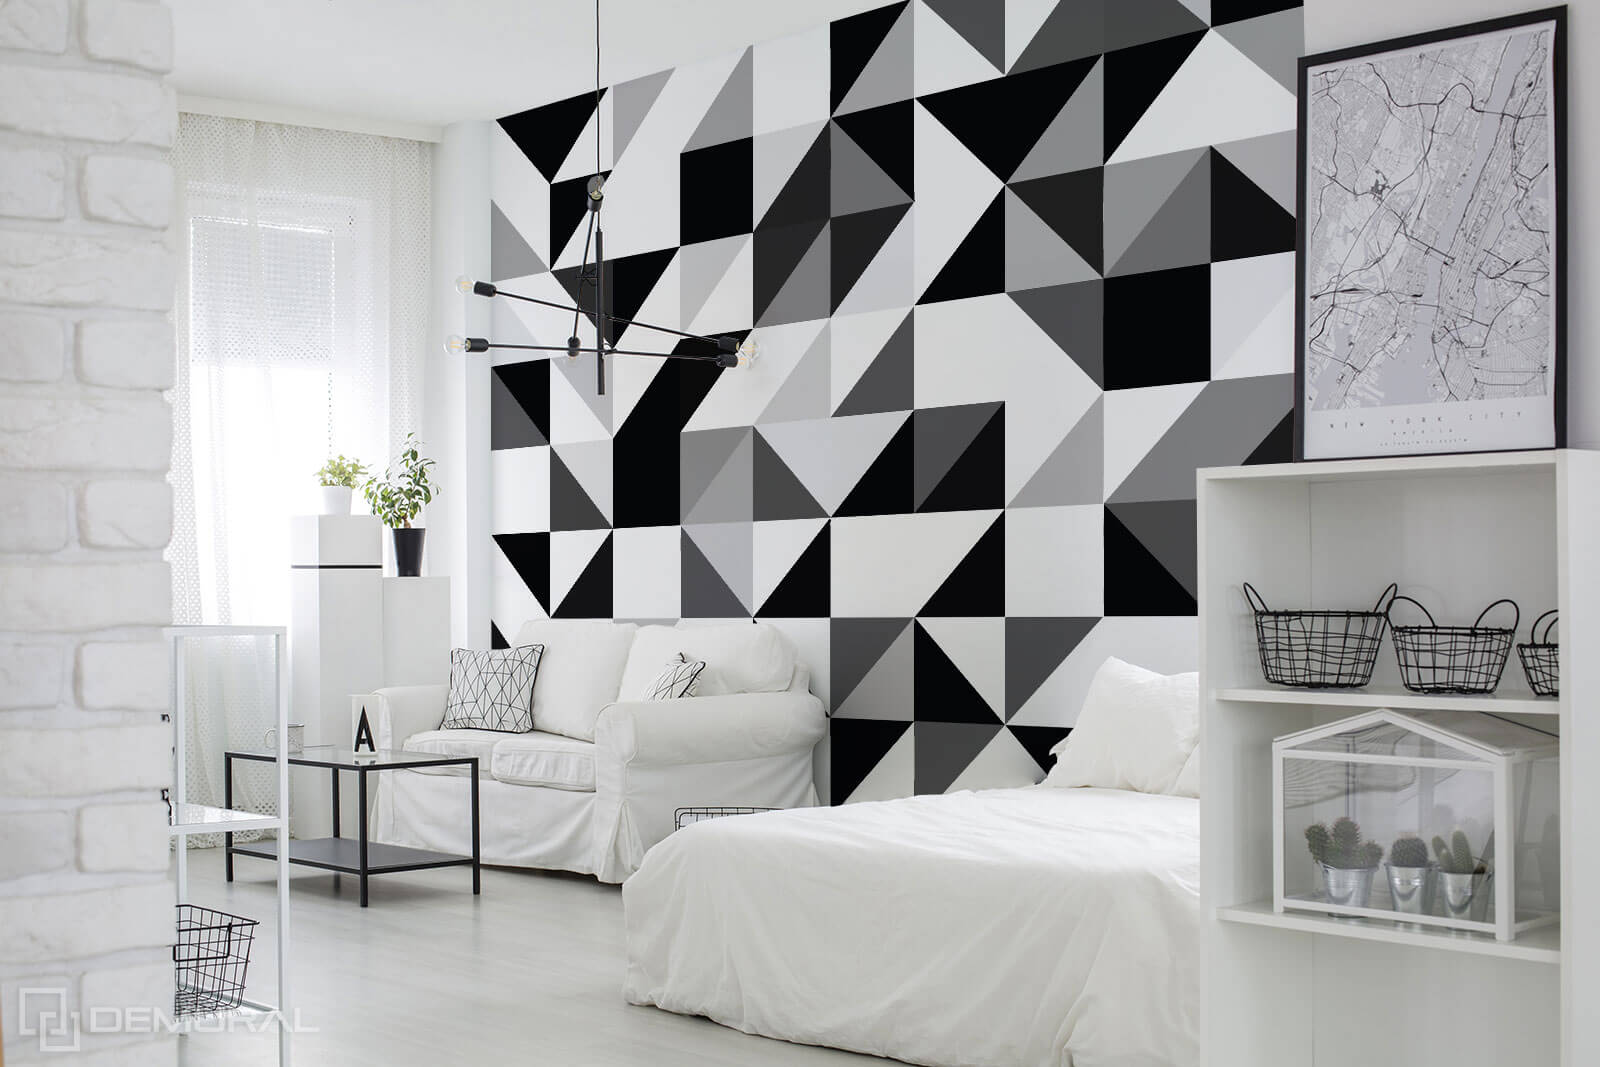 Photo wallpaper Black & White shapes - Geometric photo wallpaper - Demural